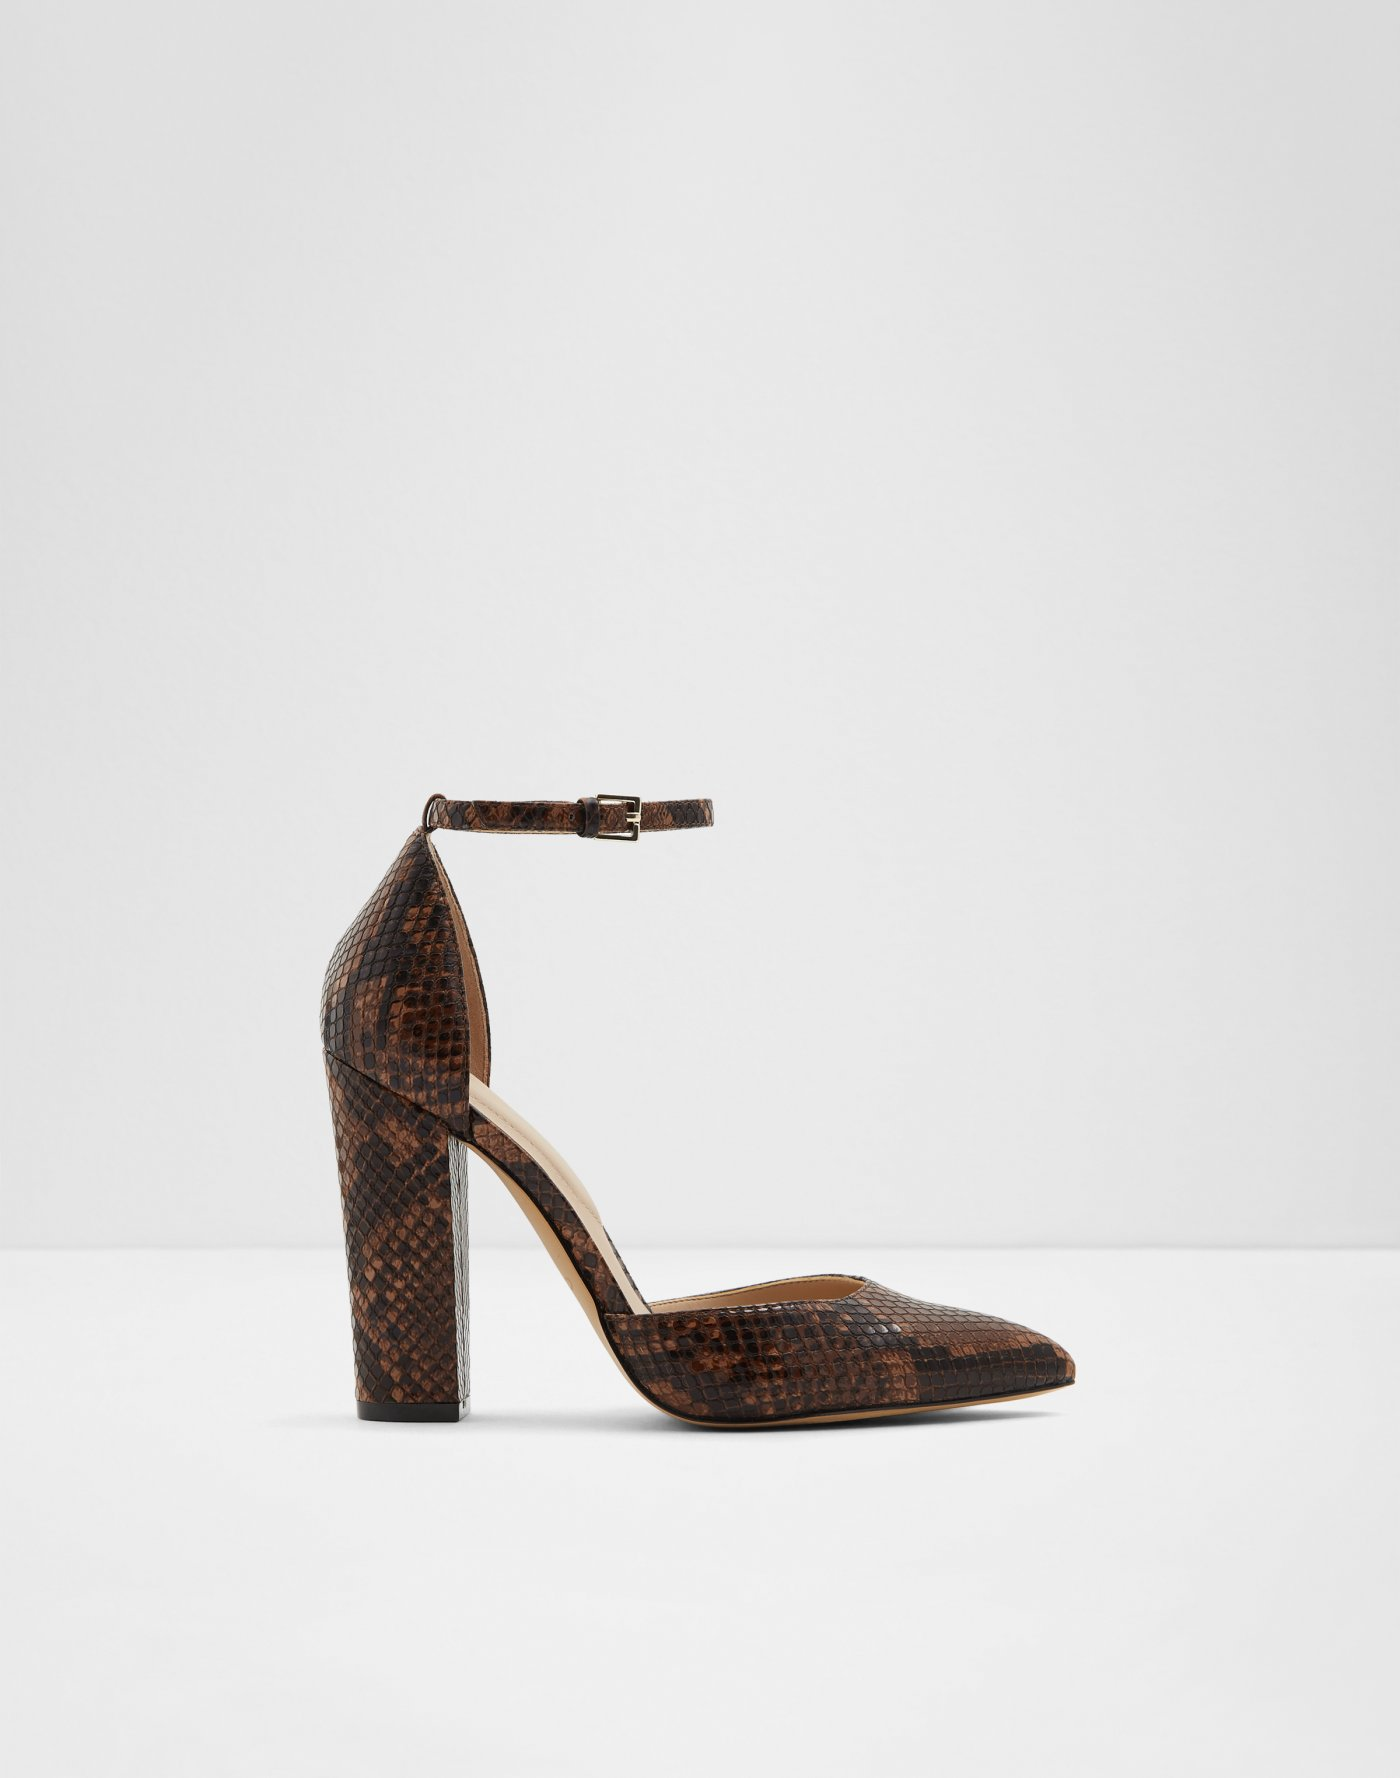 68a98ec1888 Heels For Women | Stilettos & High Heels | ALDO Canada | ALDO Canada